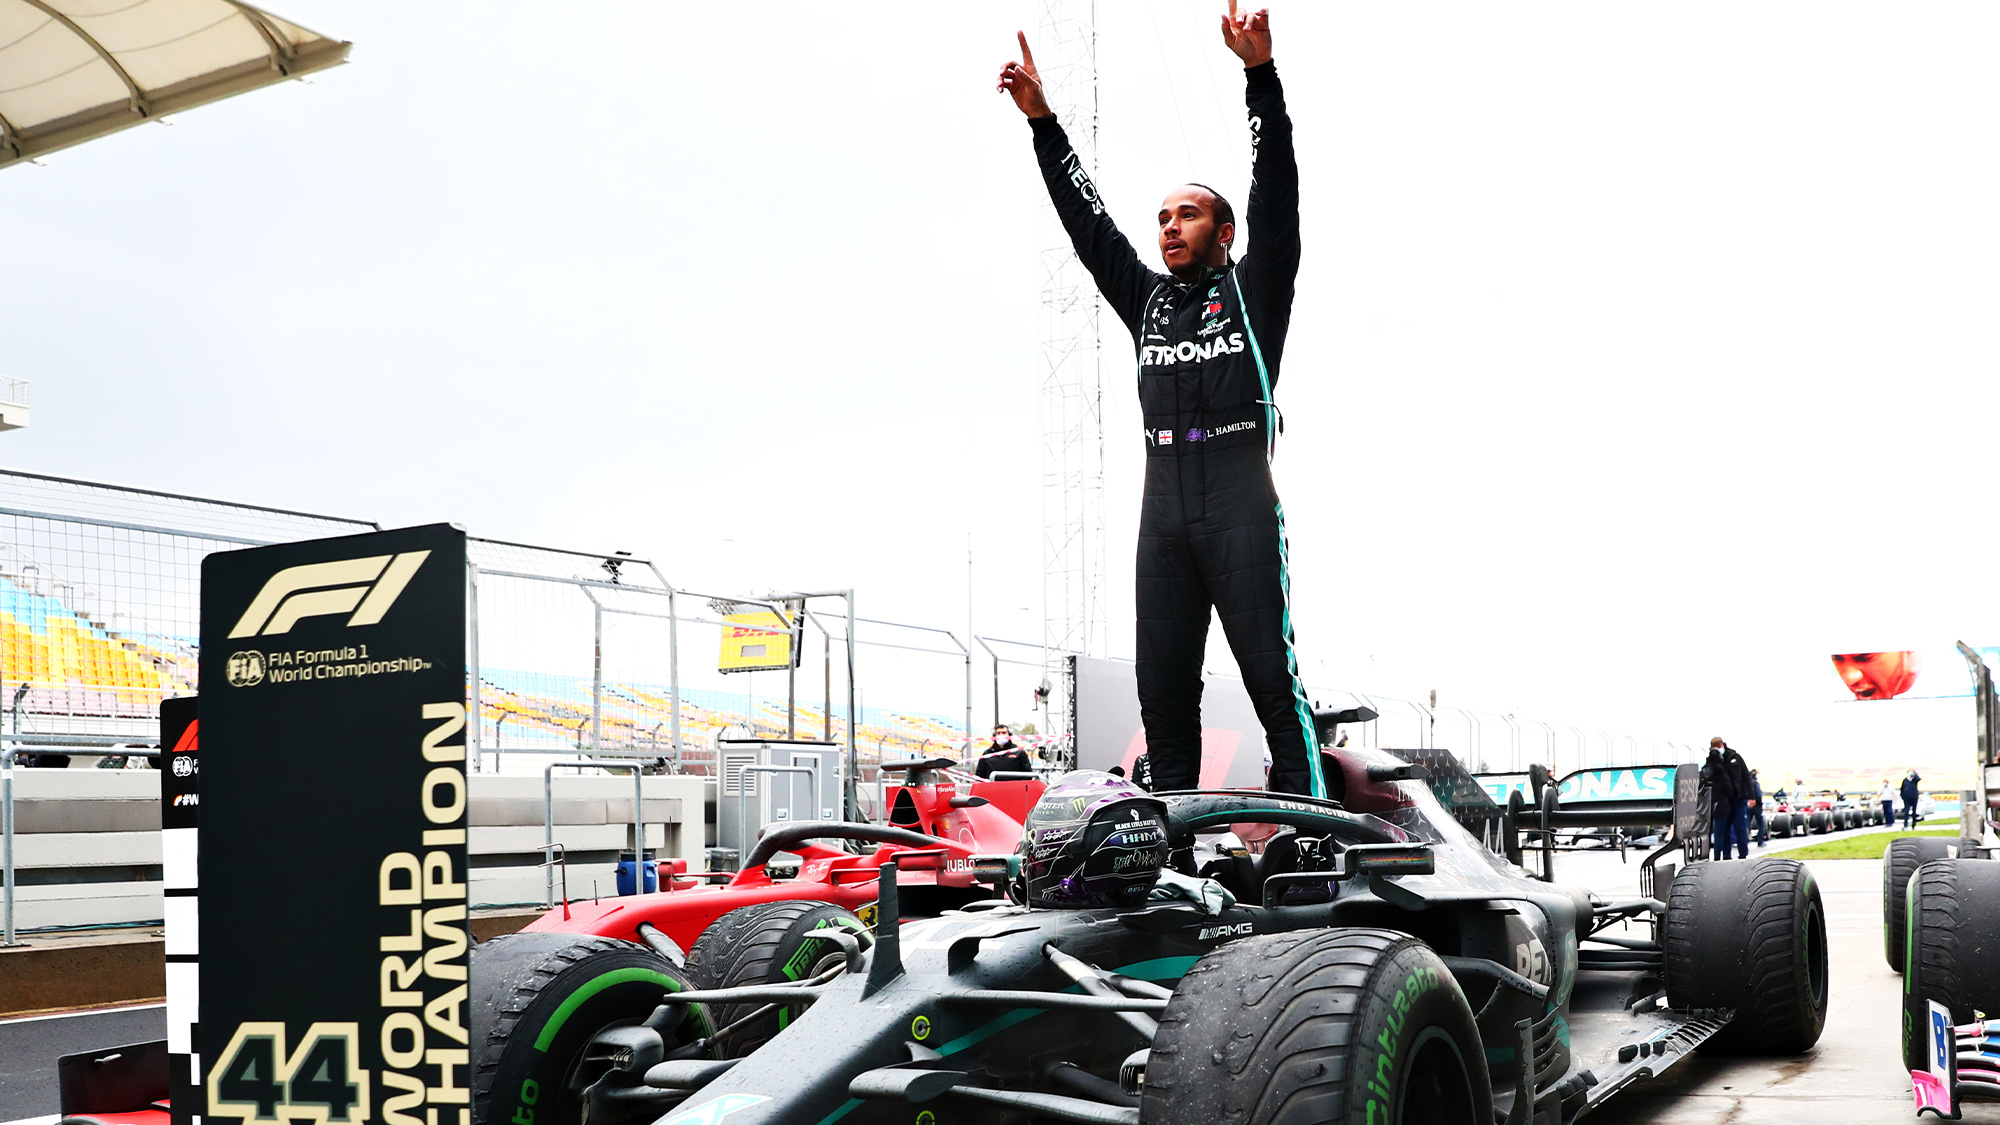 2020 Turkish Grand Prix report: Hamilton's sensational win clinches 7th F1 title